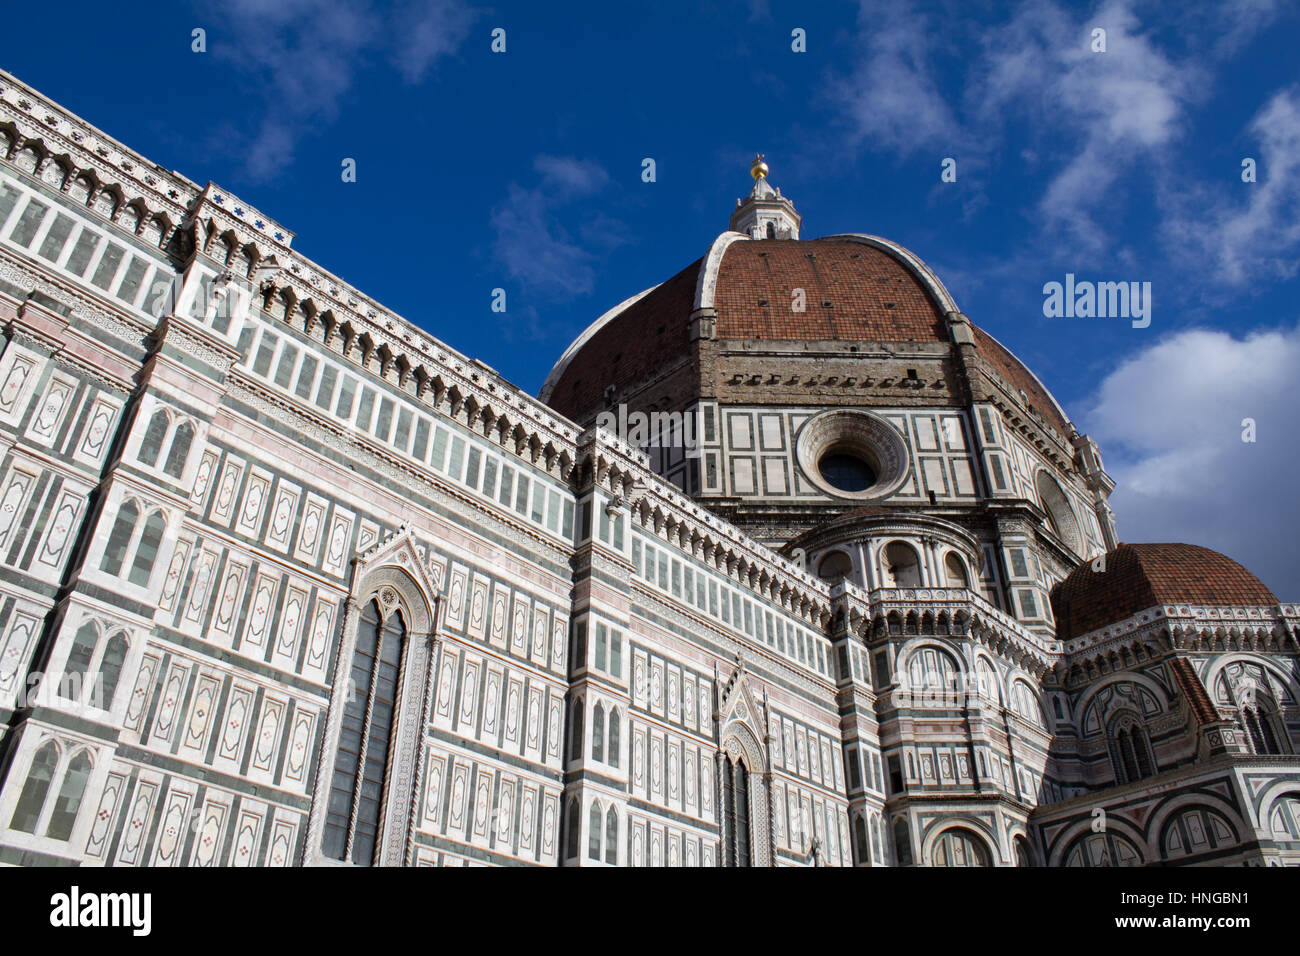 The Duomo in Florence, Italy. - Stock Image